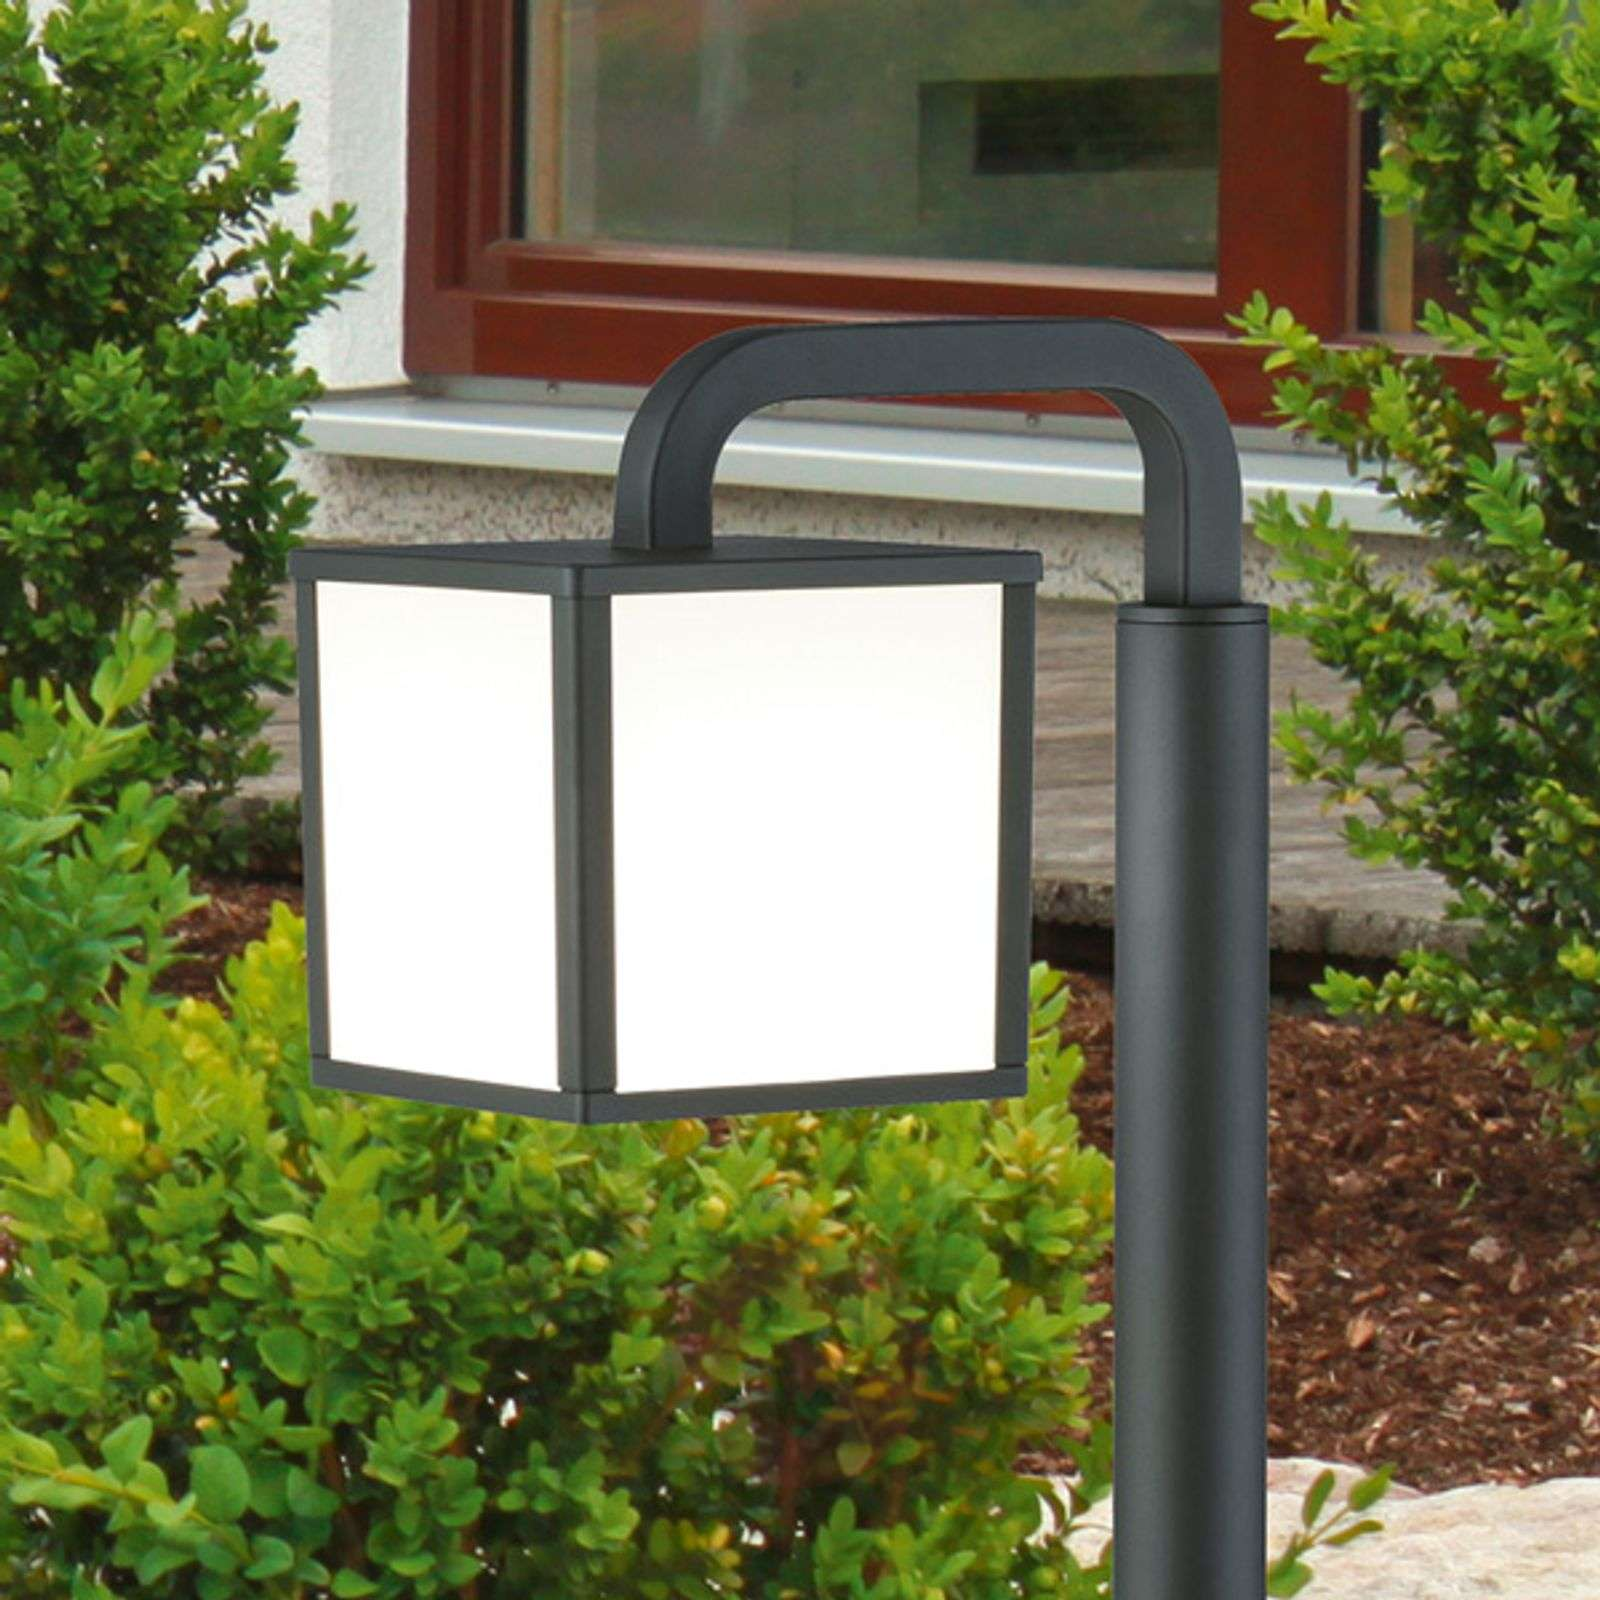 Cubango an LED path light with a lantern shape-9004727-01